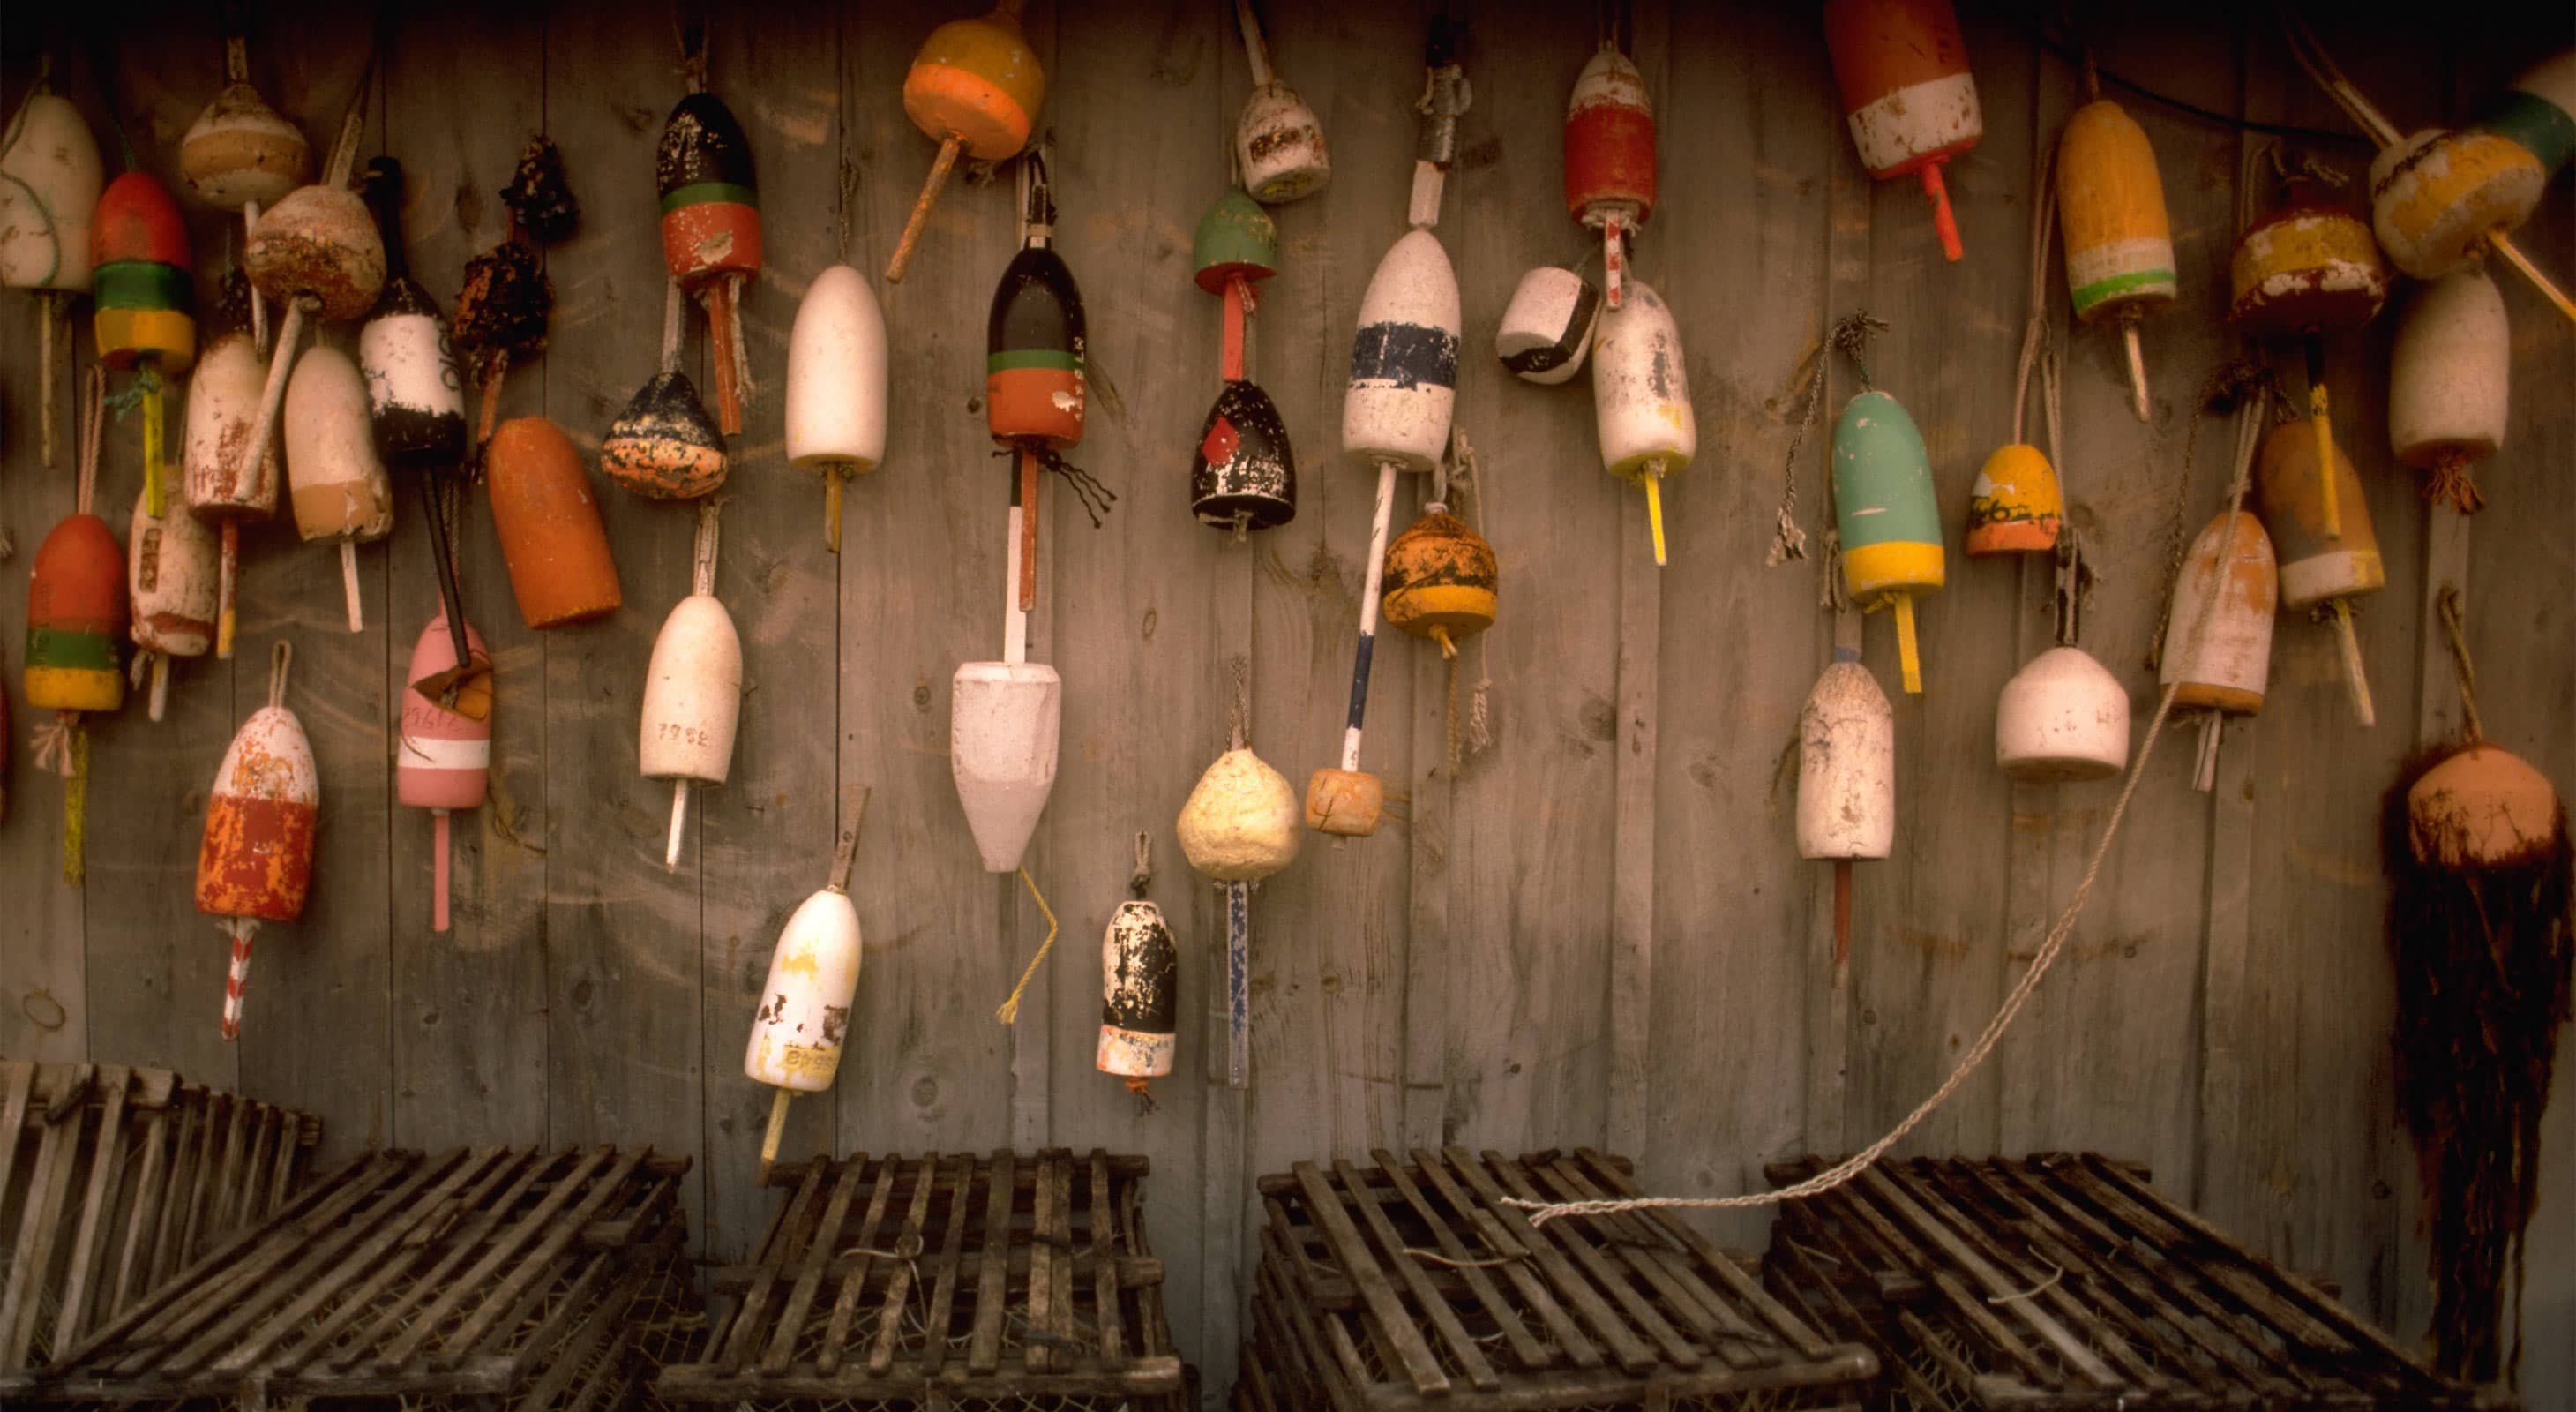 Wall of Lobster Buoys